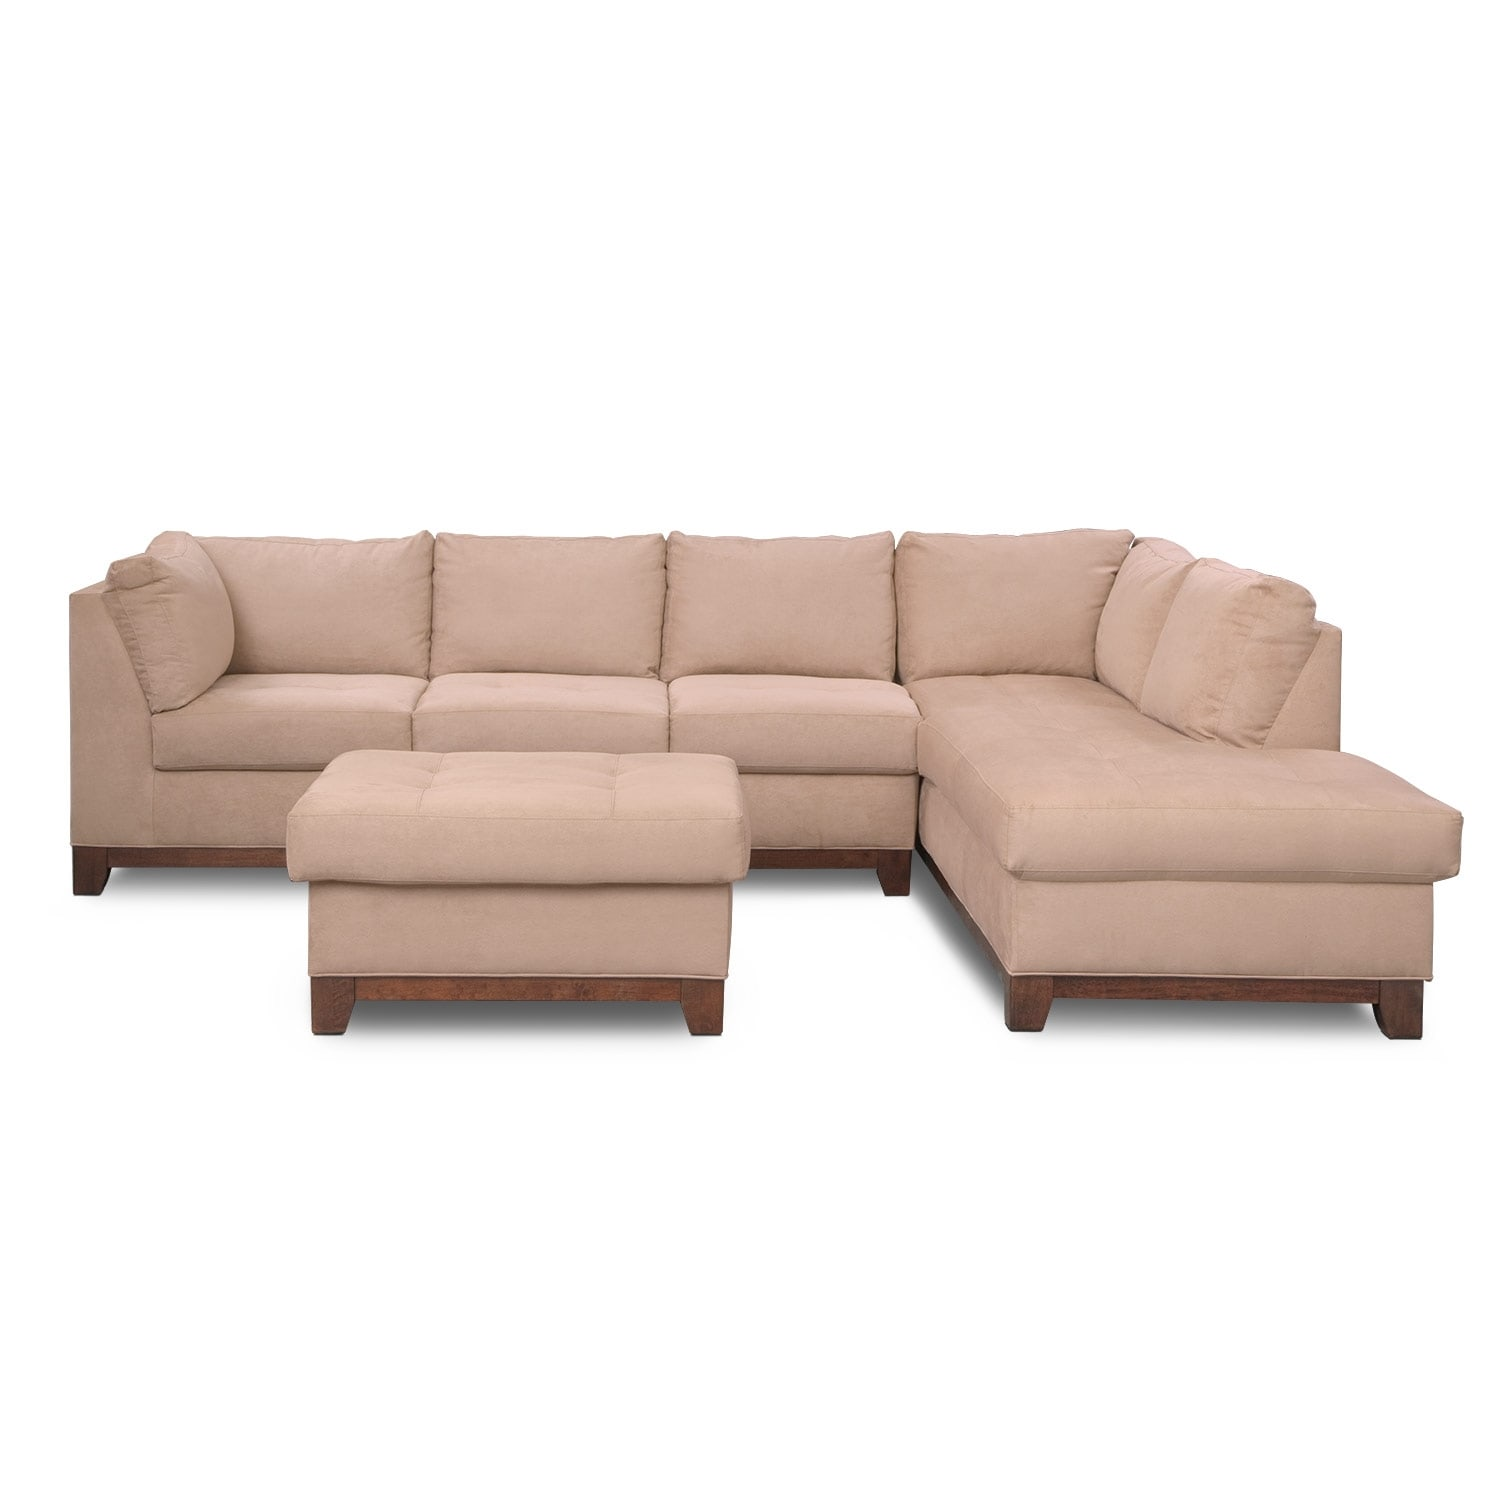 Soho 2 piece sectional with right facing chaise and for 2 piece sectional with chaise